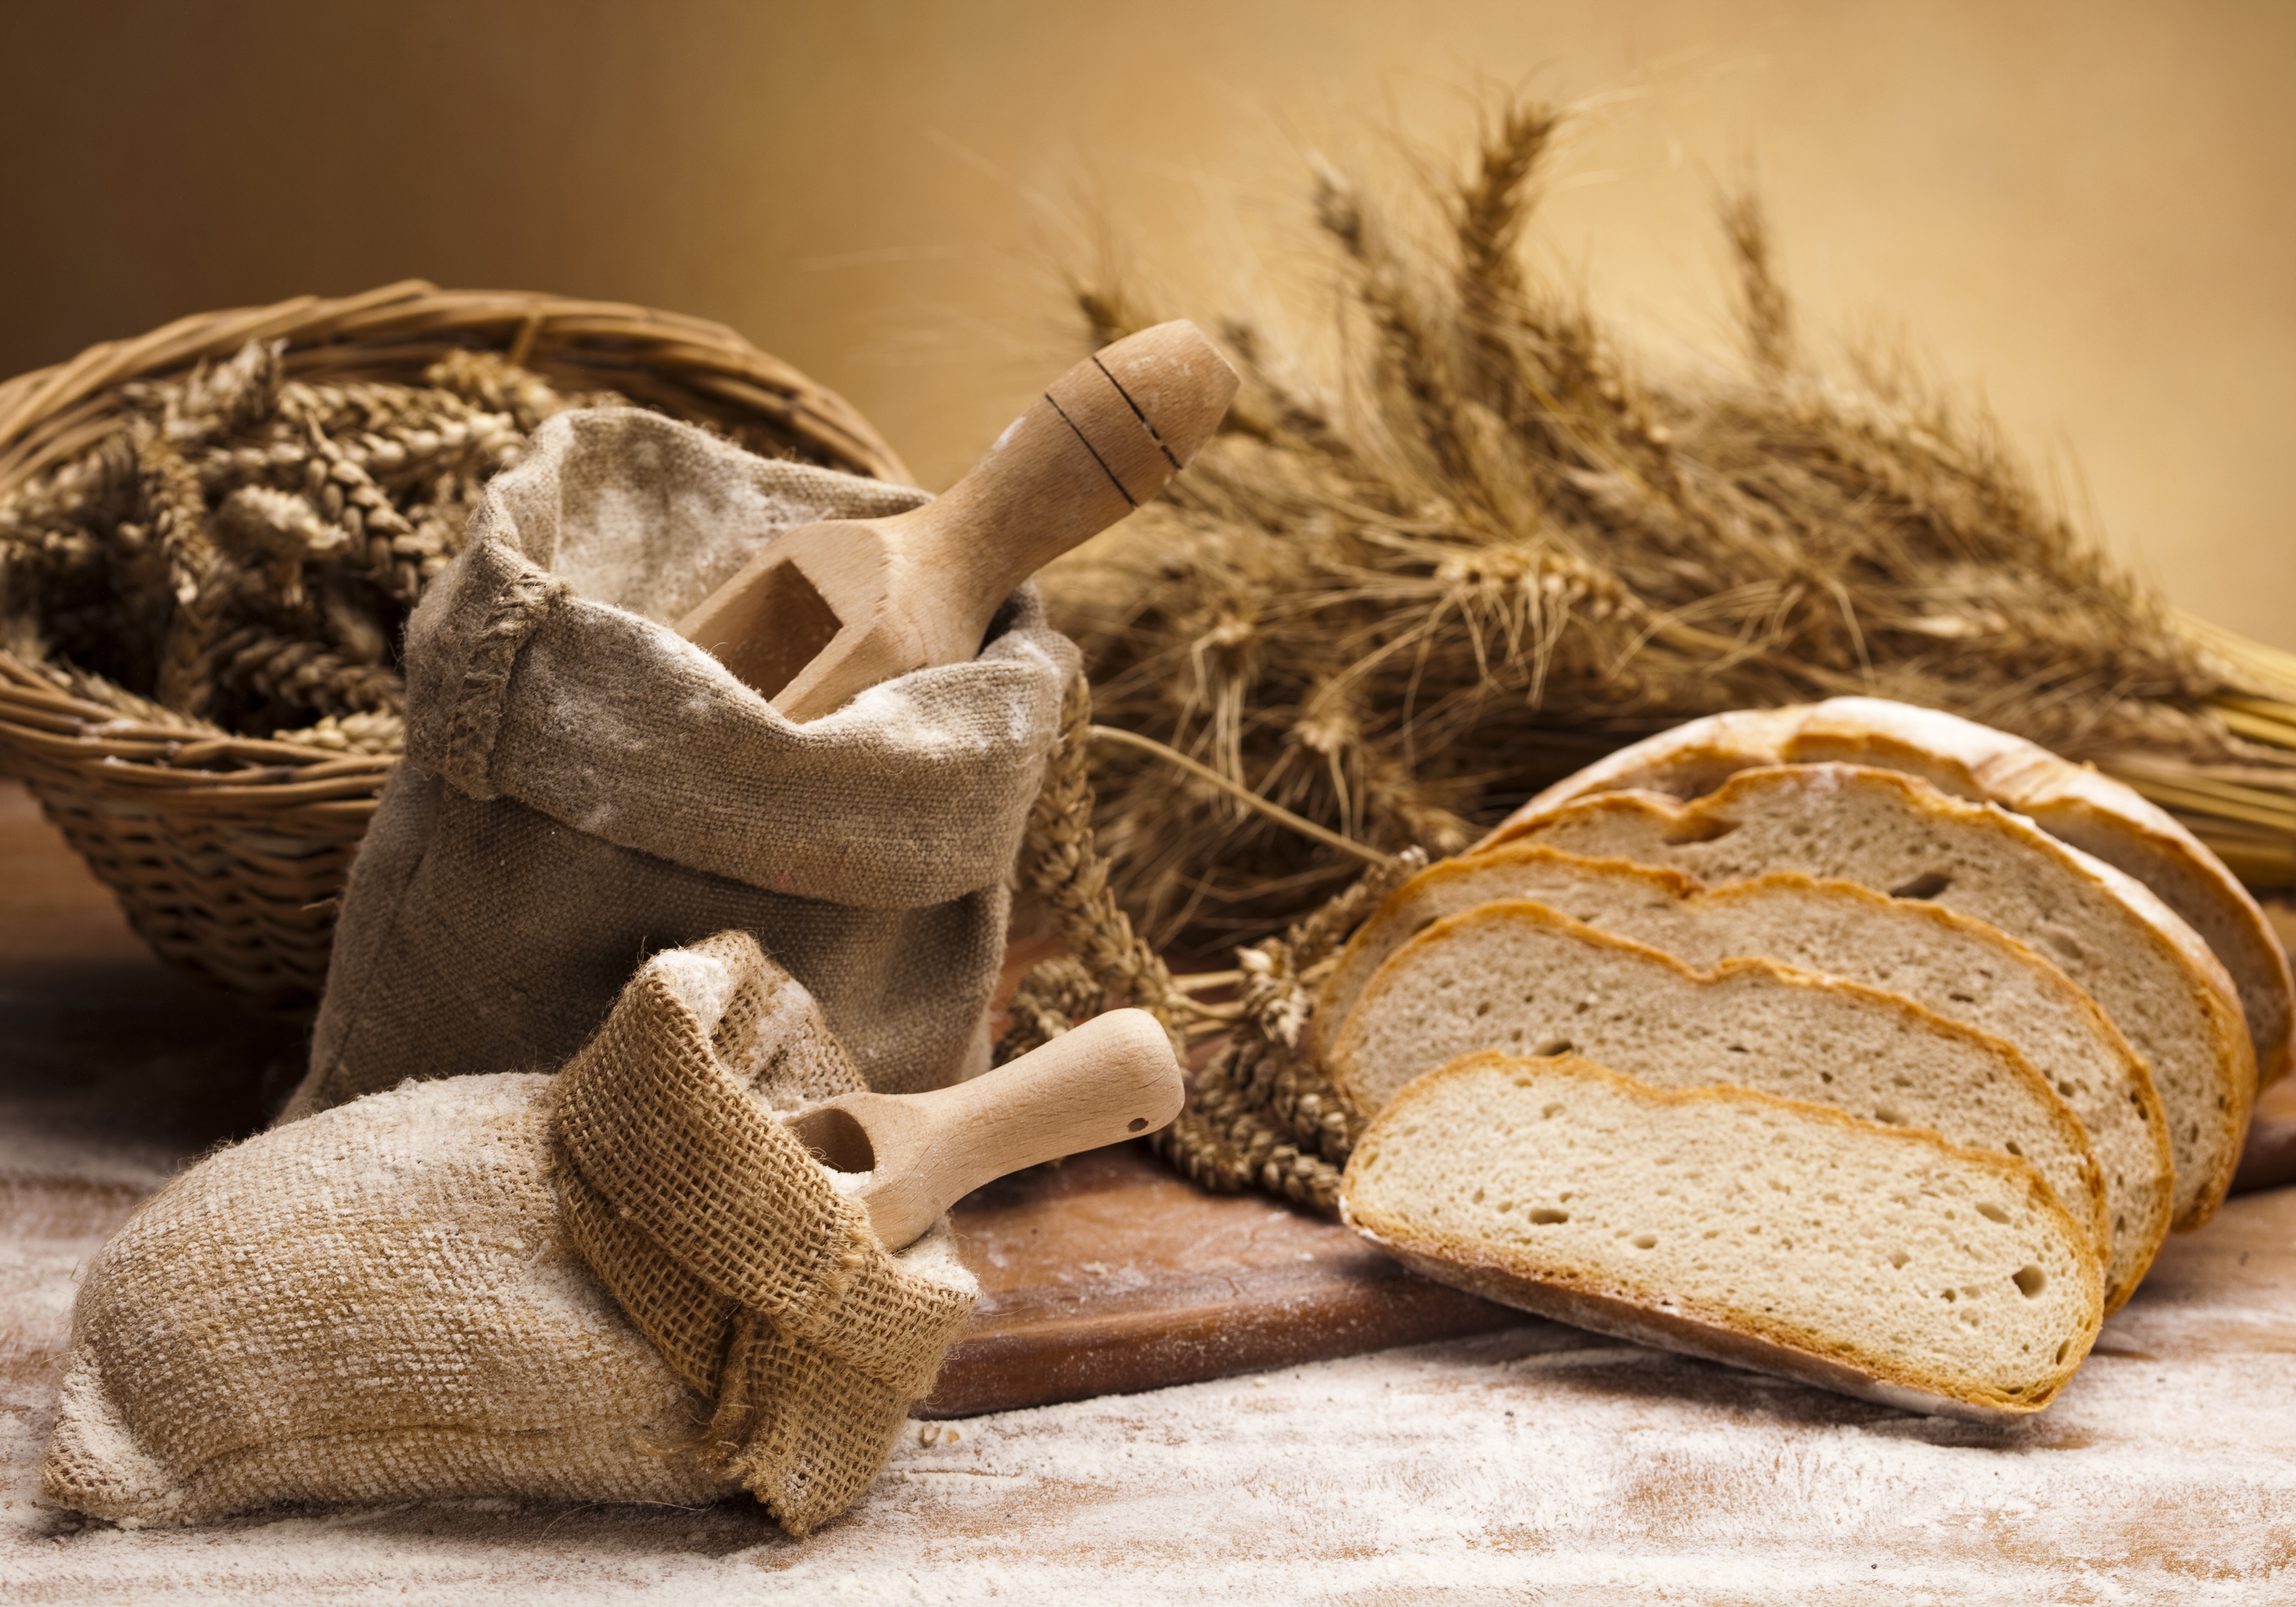 Collection_of_bread_R_#4 (2)